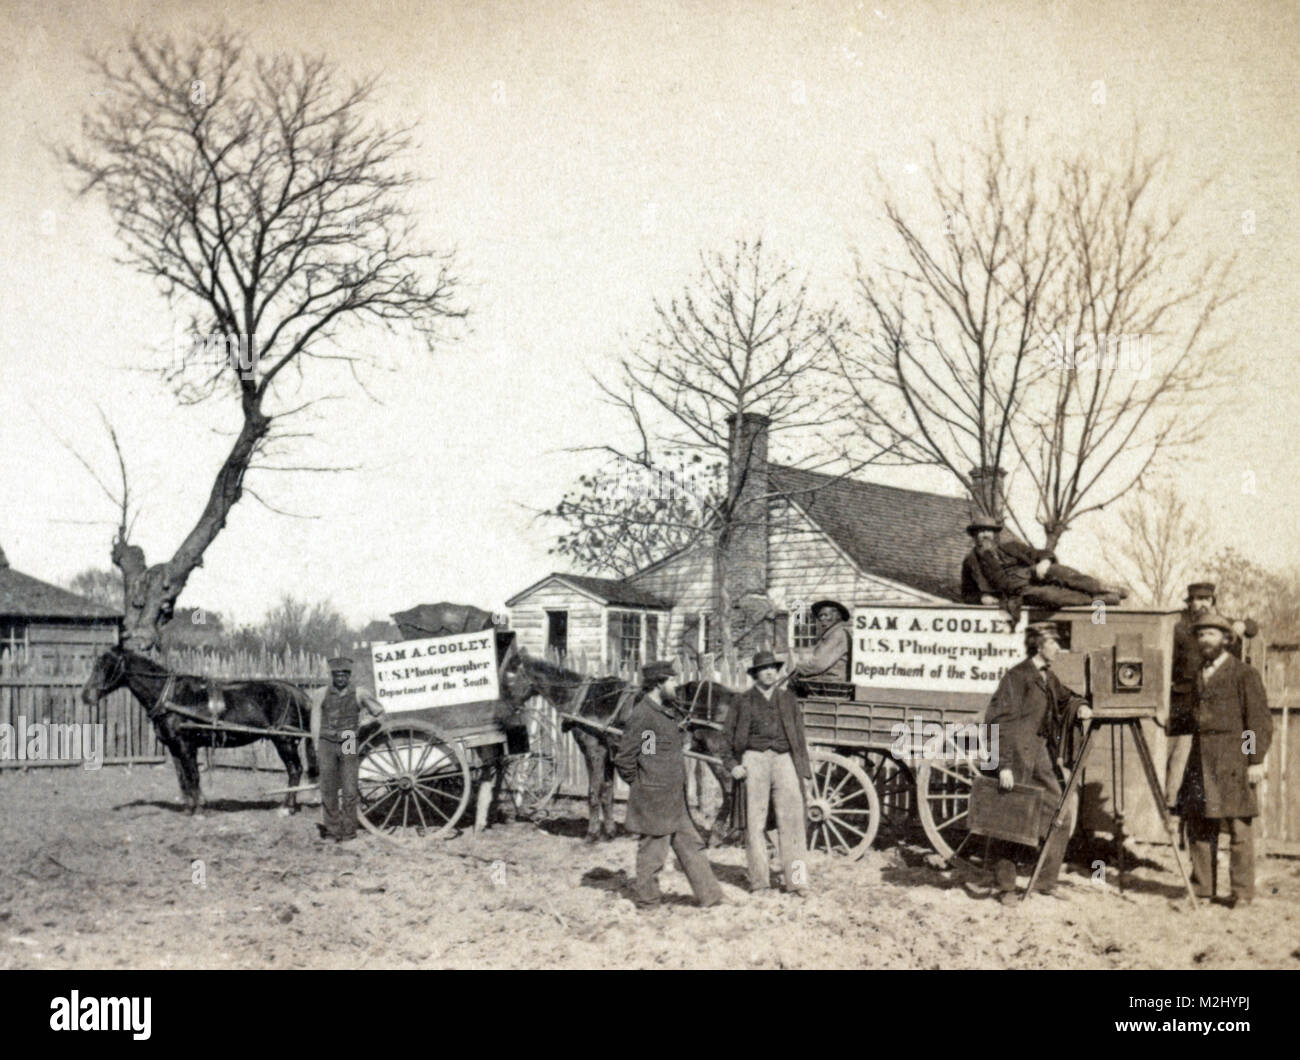 American Civil War, Southern Photography Unit, 1860s - Stock Image